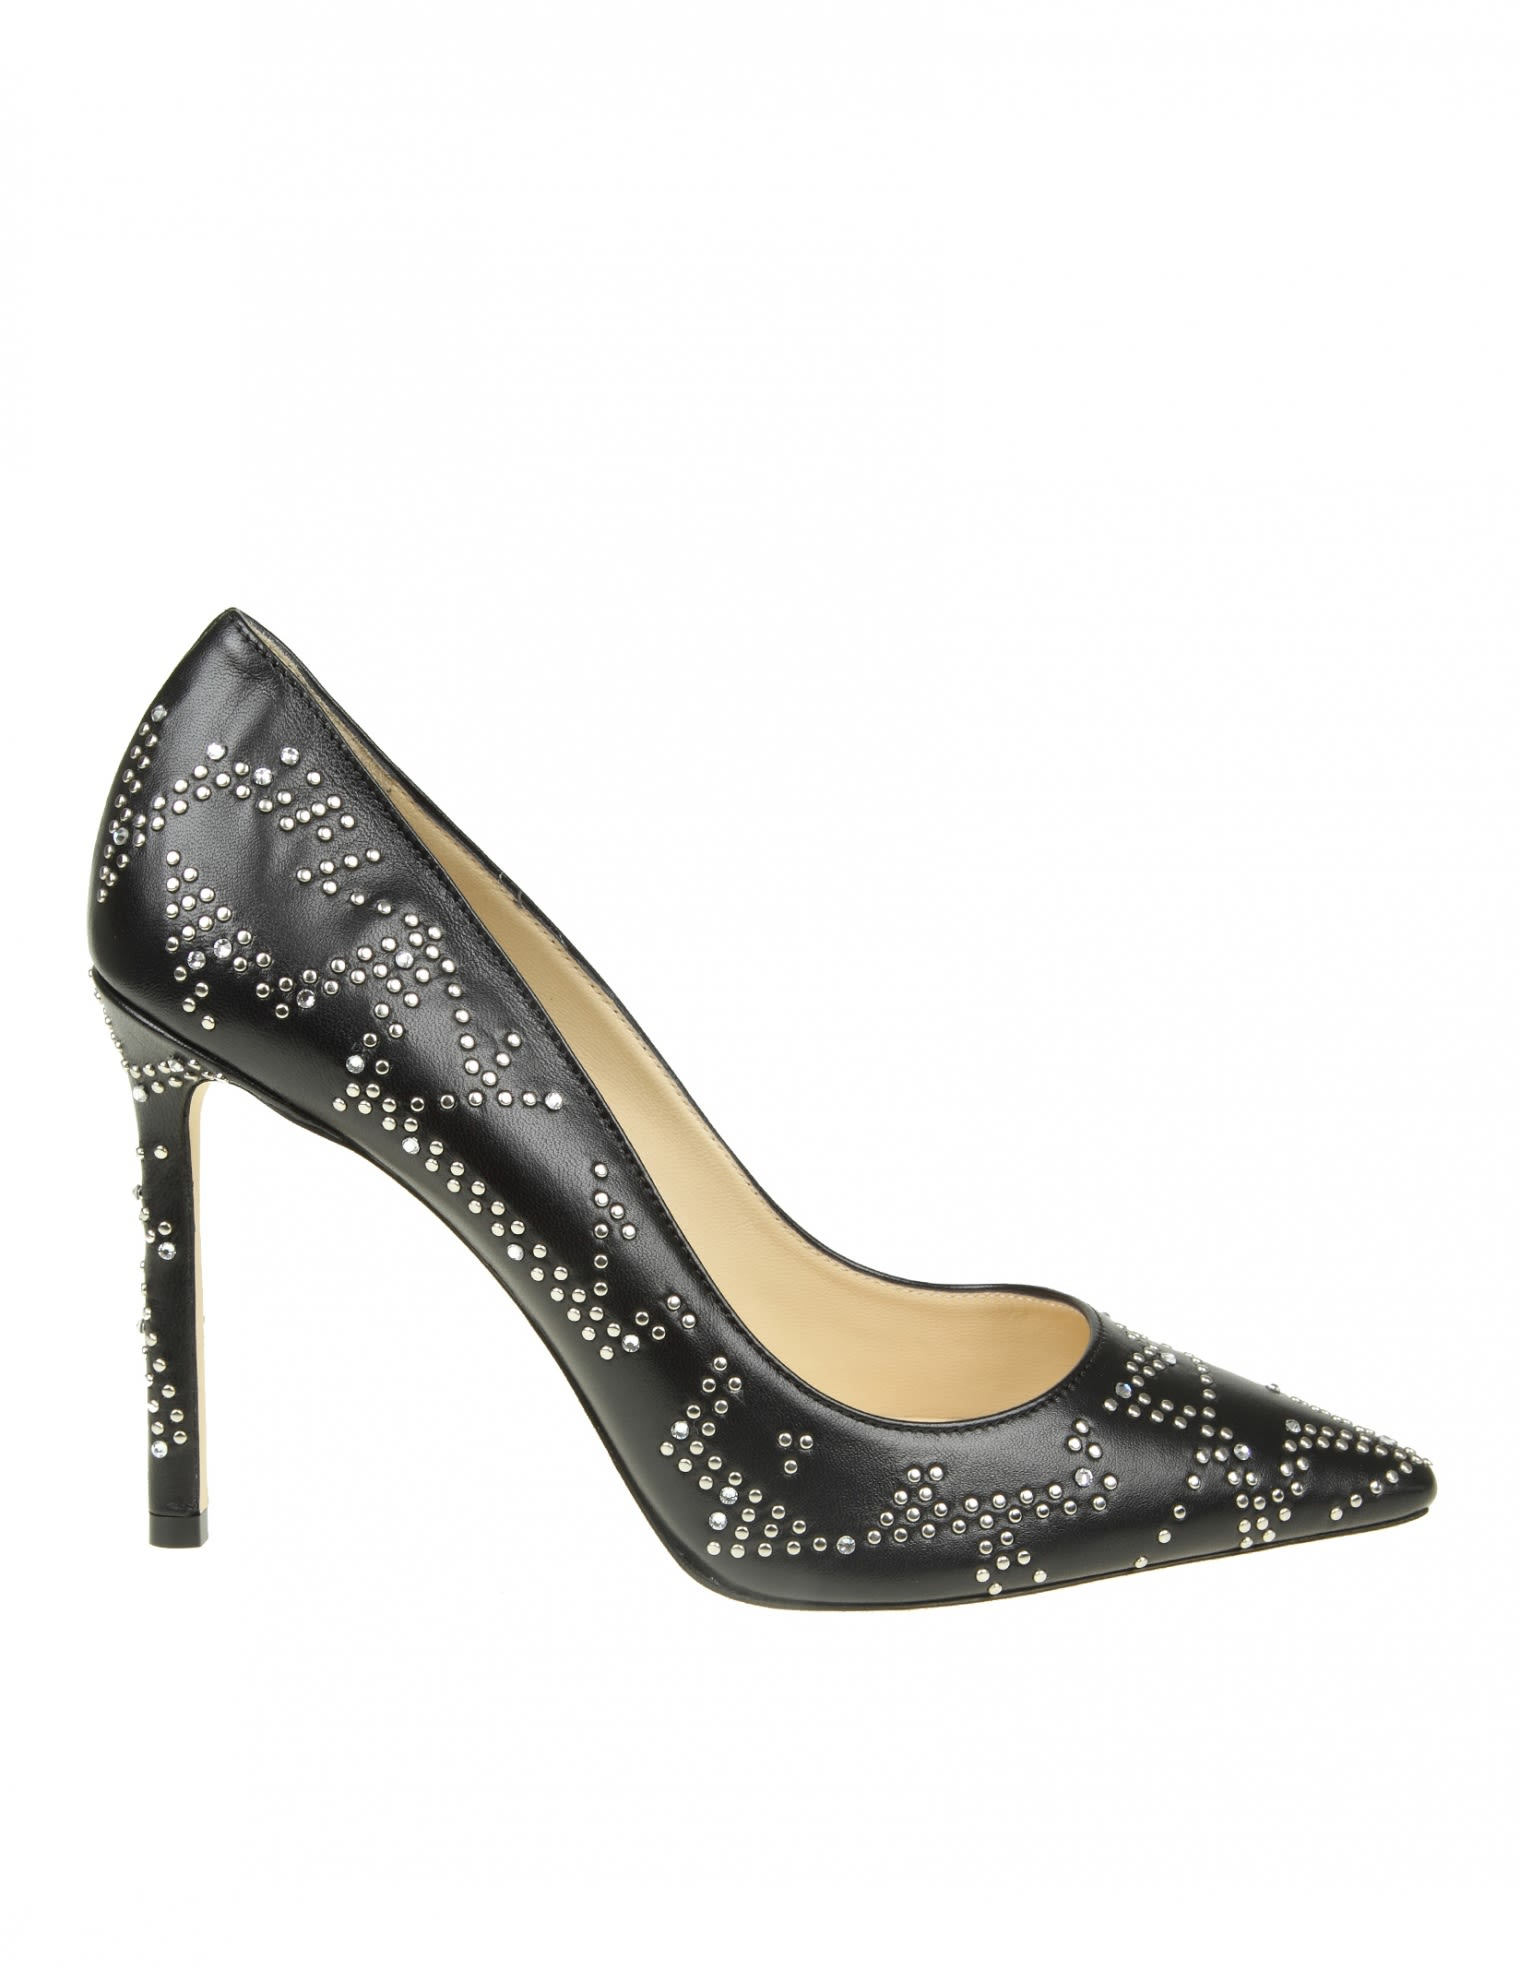 JIMMY CHOO ROMY 100 DECOLLETE IN BLACK LEATHER WITH STUDS